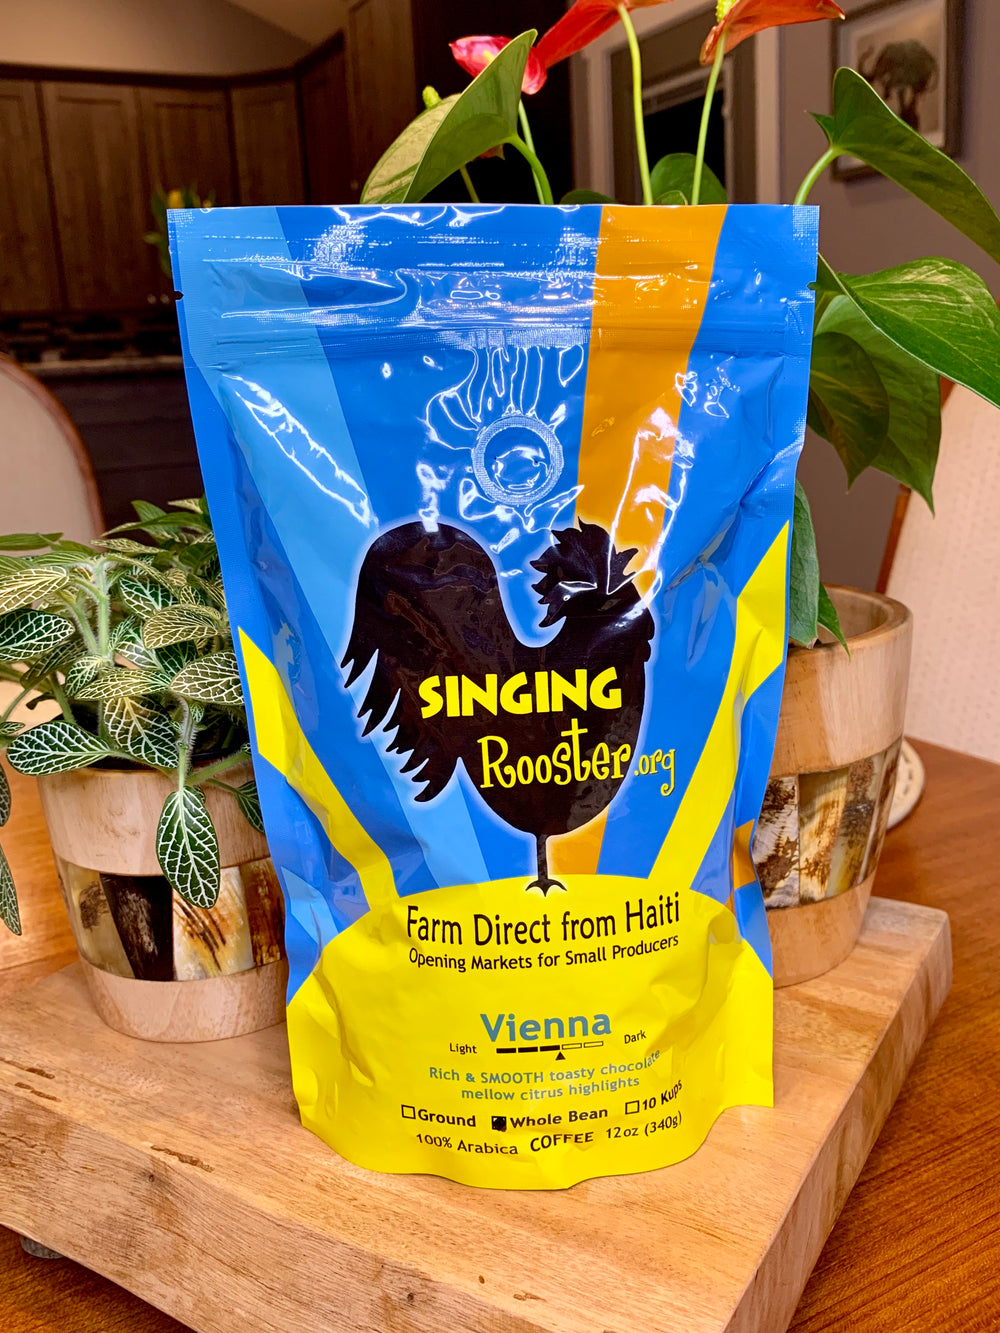 Vienna Medium Roast Coffee by Singing Rooster from Haiti